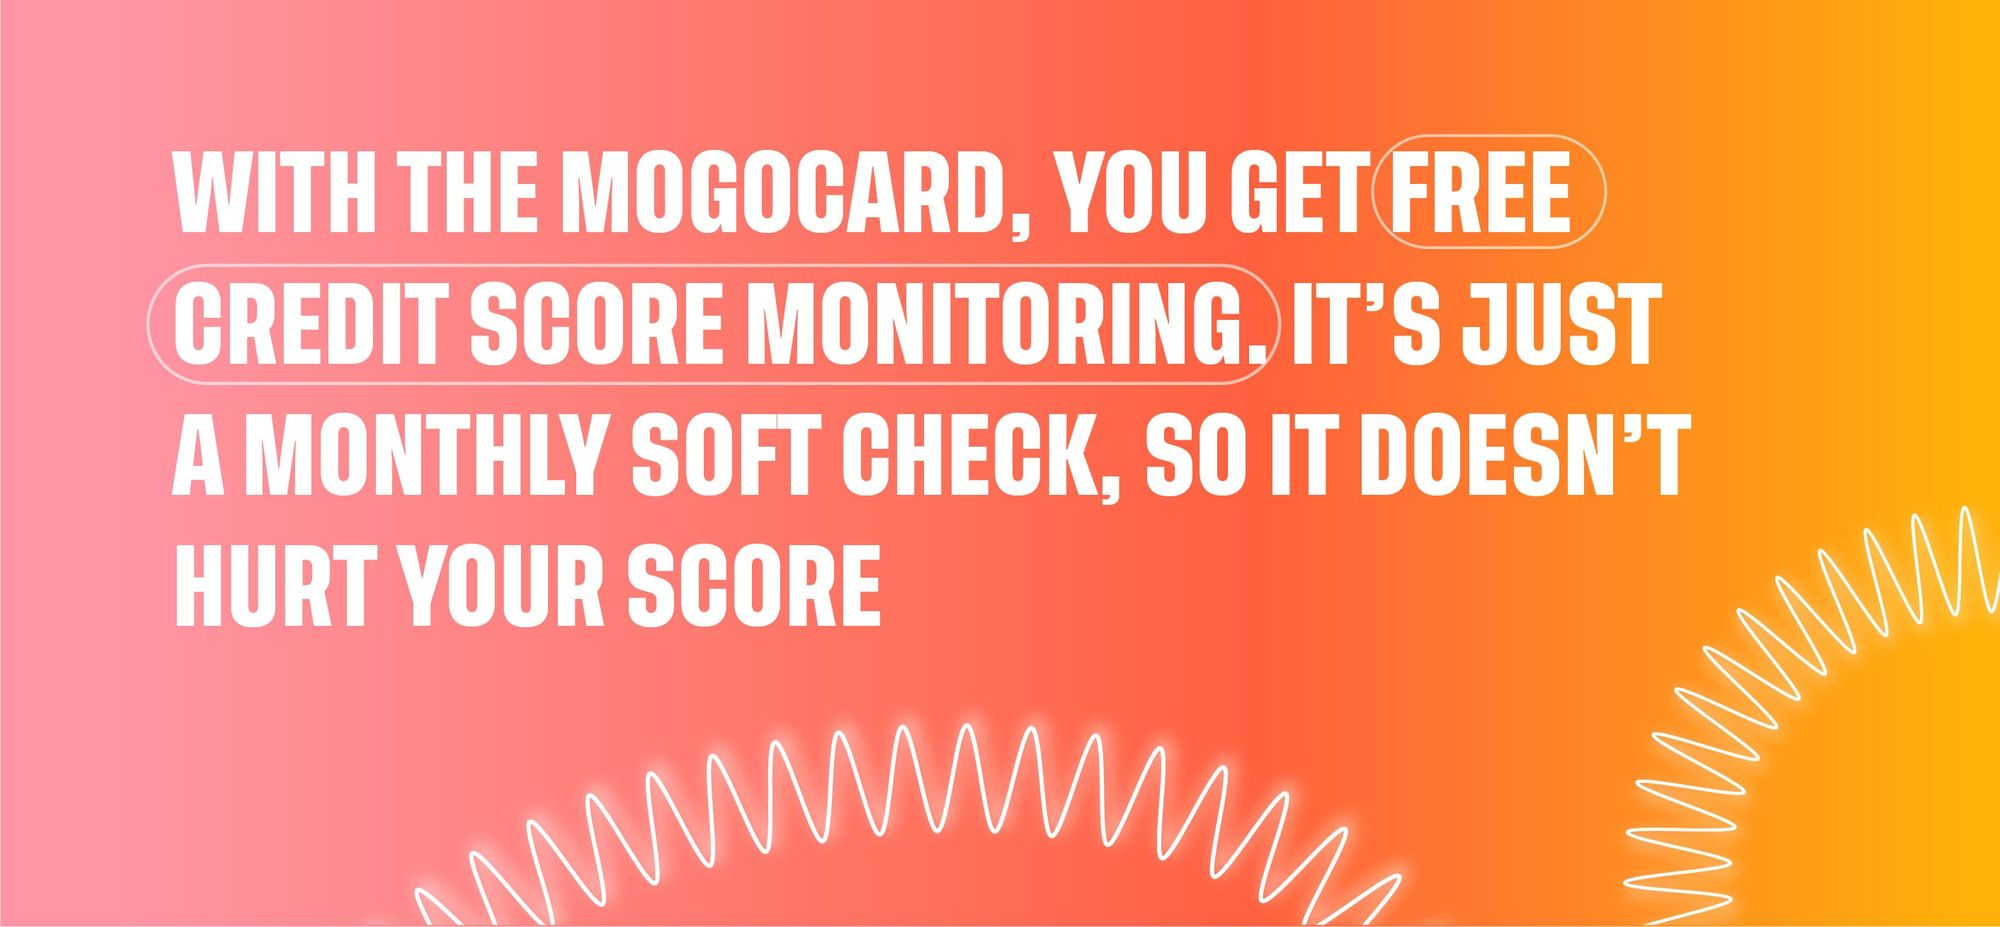 With the MogoCard, you get freed credit score monitoring. It's just a monthly soft check, so it doesn't hurt your score.